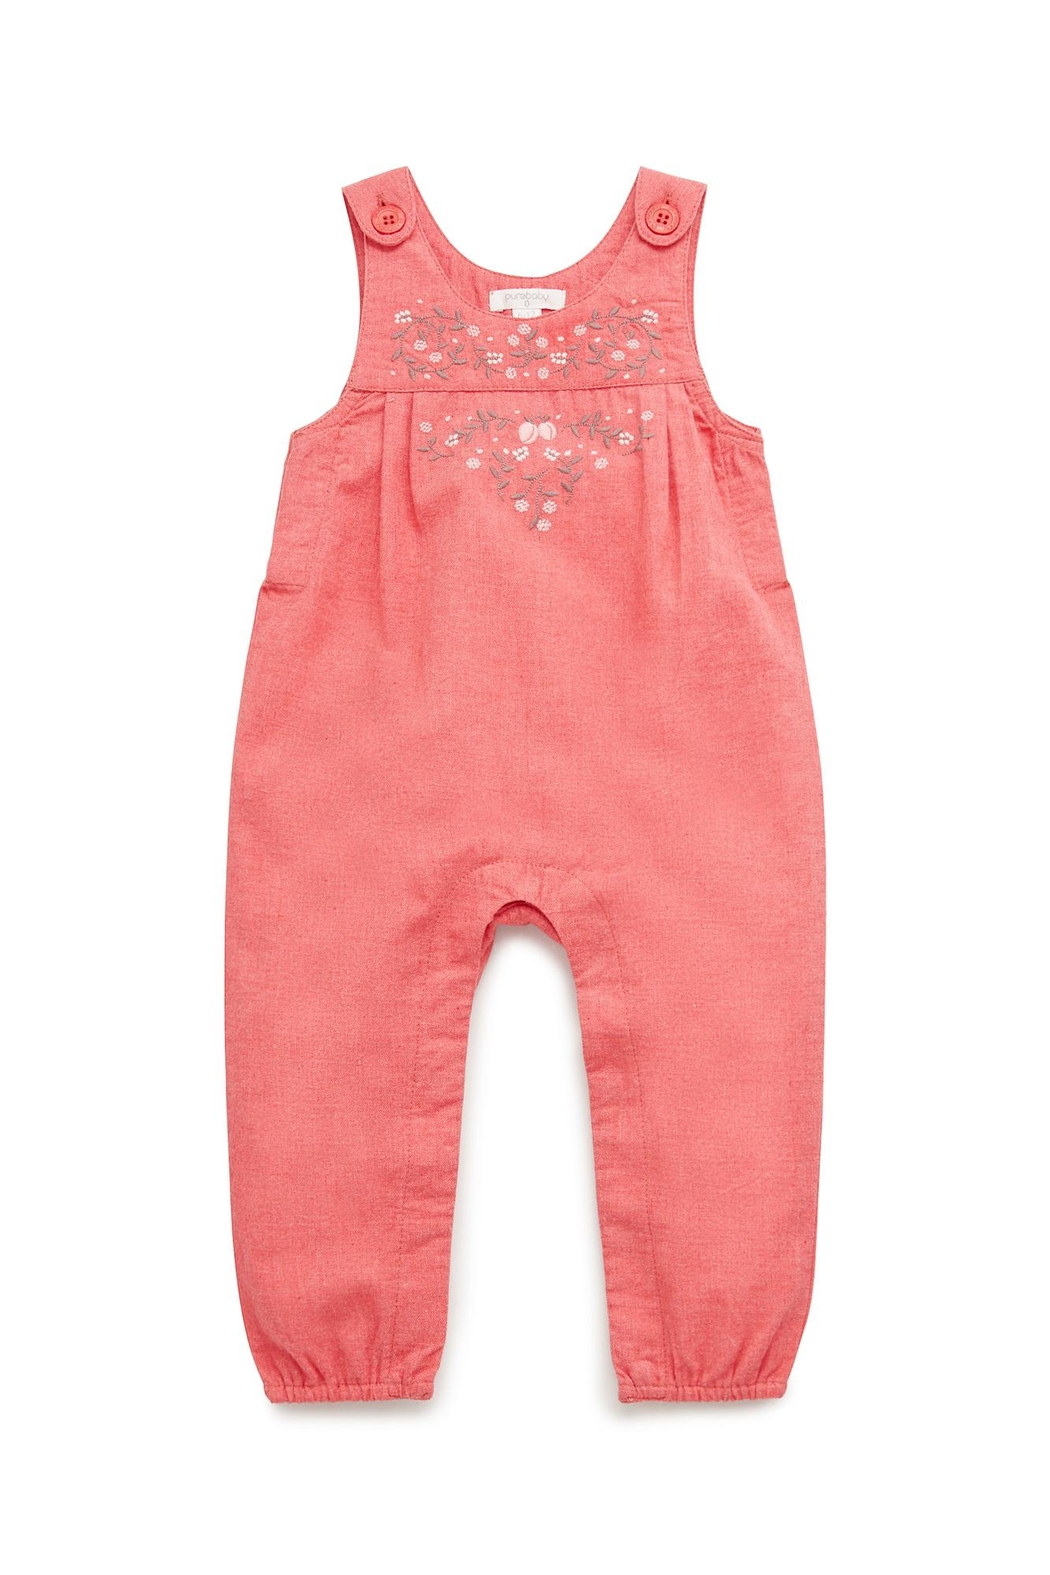 Purebaby Nectarine Overalls - Front Cropped Image